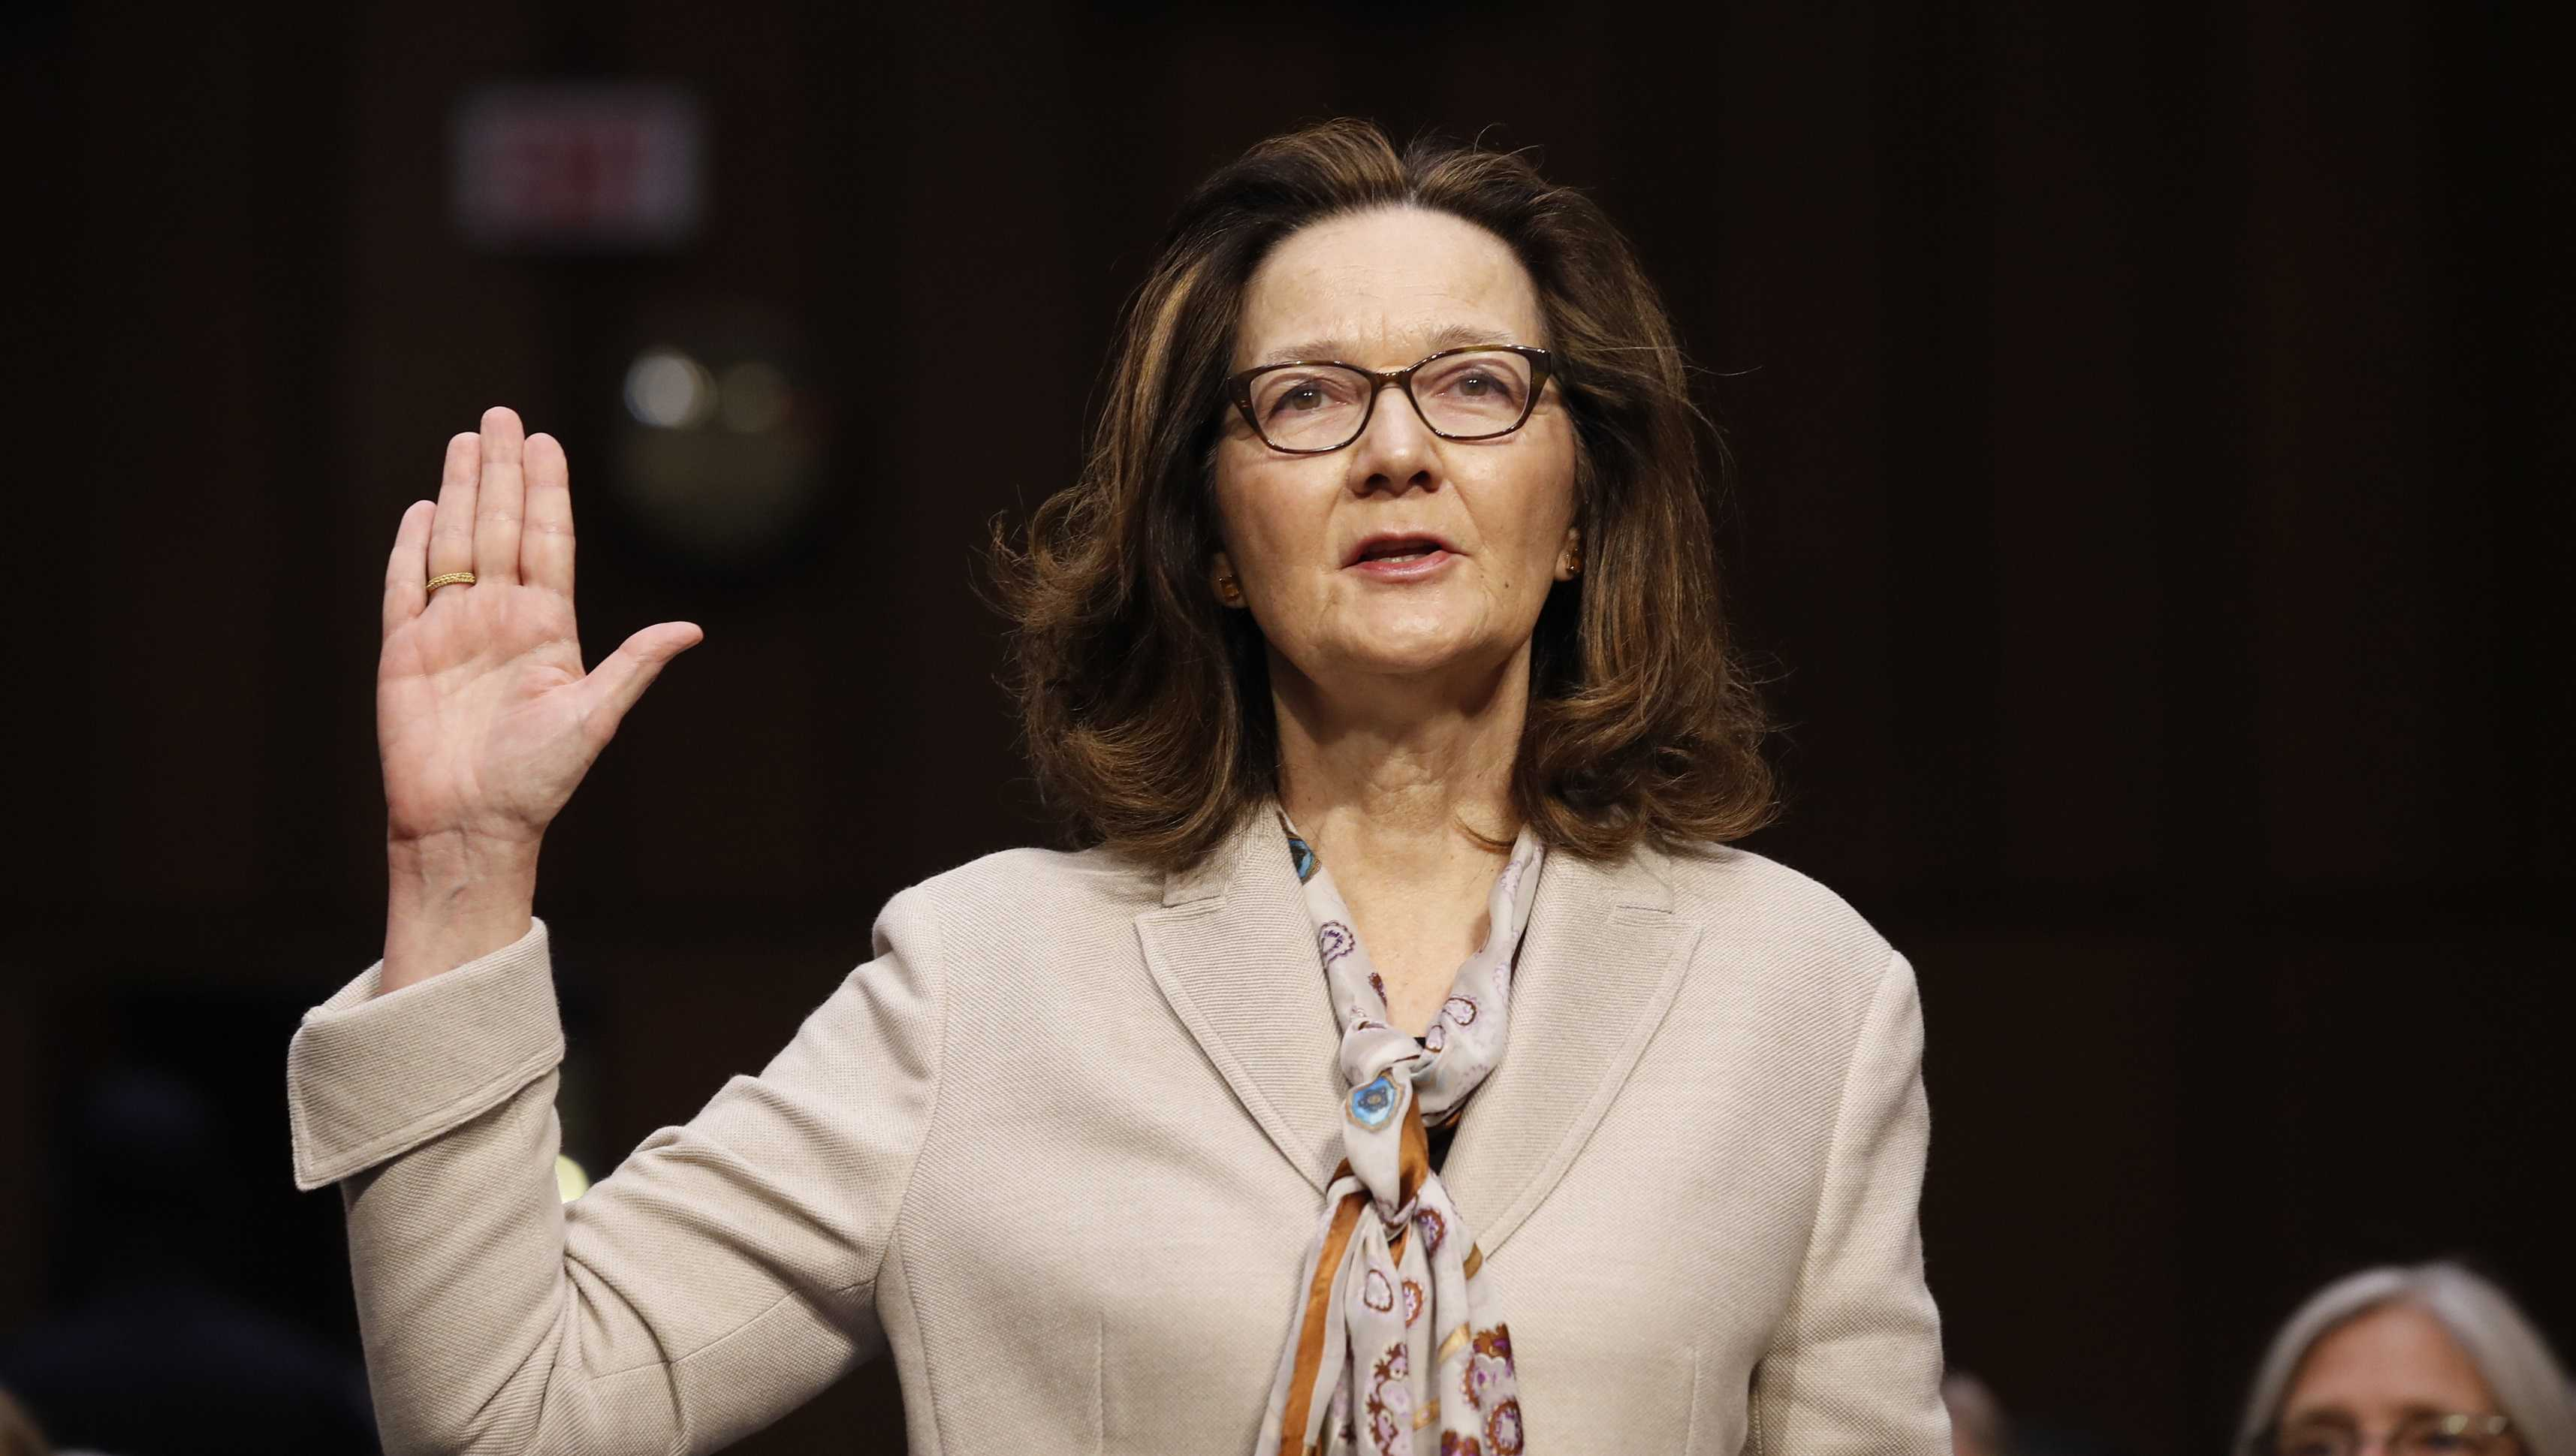 CIA nominee Gina Haspel is sworn in during a confirmation hearing of the Senate Intelligence Committee on Capitol Hill, Wednesday, May 9, 2018 in Washington.